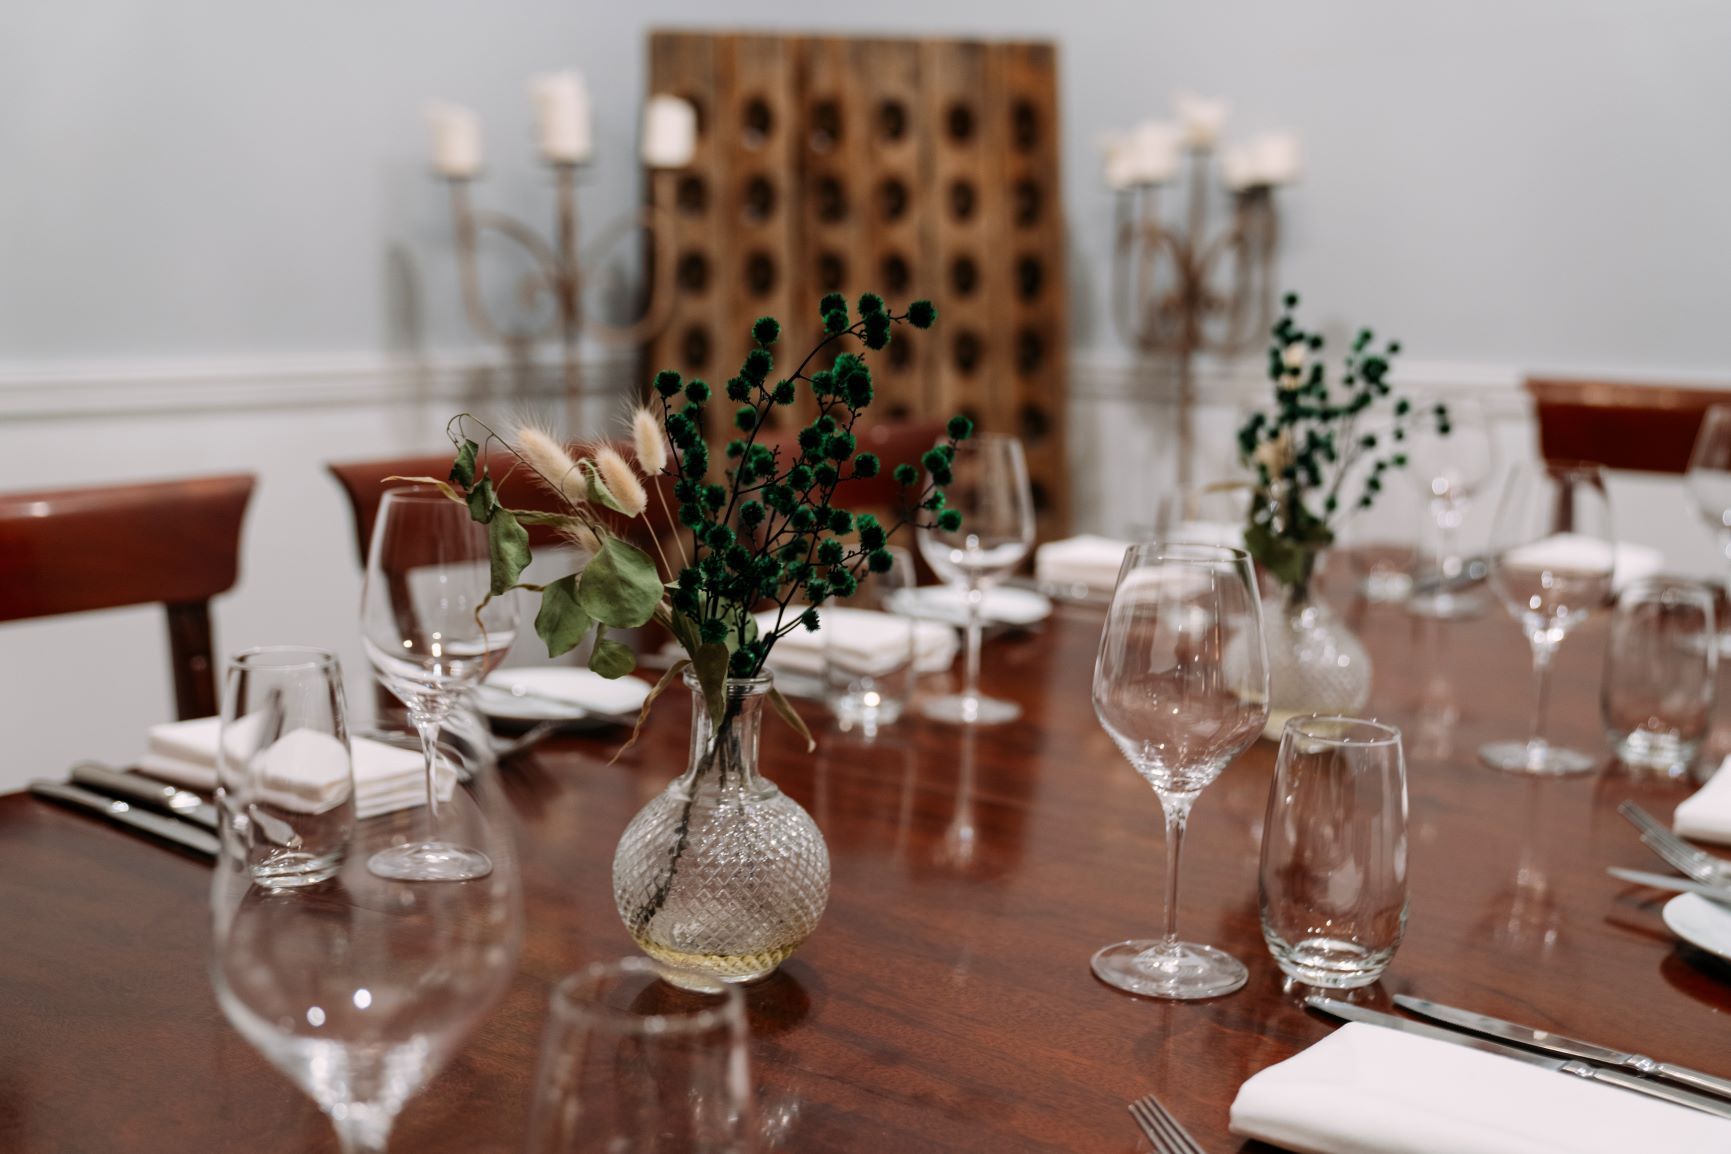 THE PRIVATE DINING ROOM - The Private Dining Room at The Royal Exchange provides complete privacy and is a popular space in which to hold an intimate private lunch, board meeting, workshop, training session and more.CAPACITIESBanquette: 12 GuestsBoardroom: 12 GuestsClassroom: 12 Guests